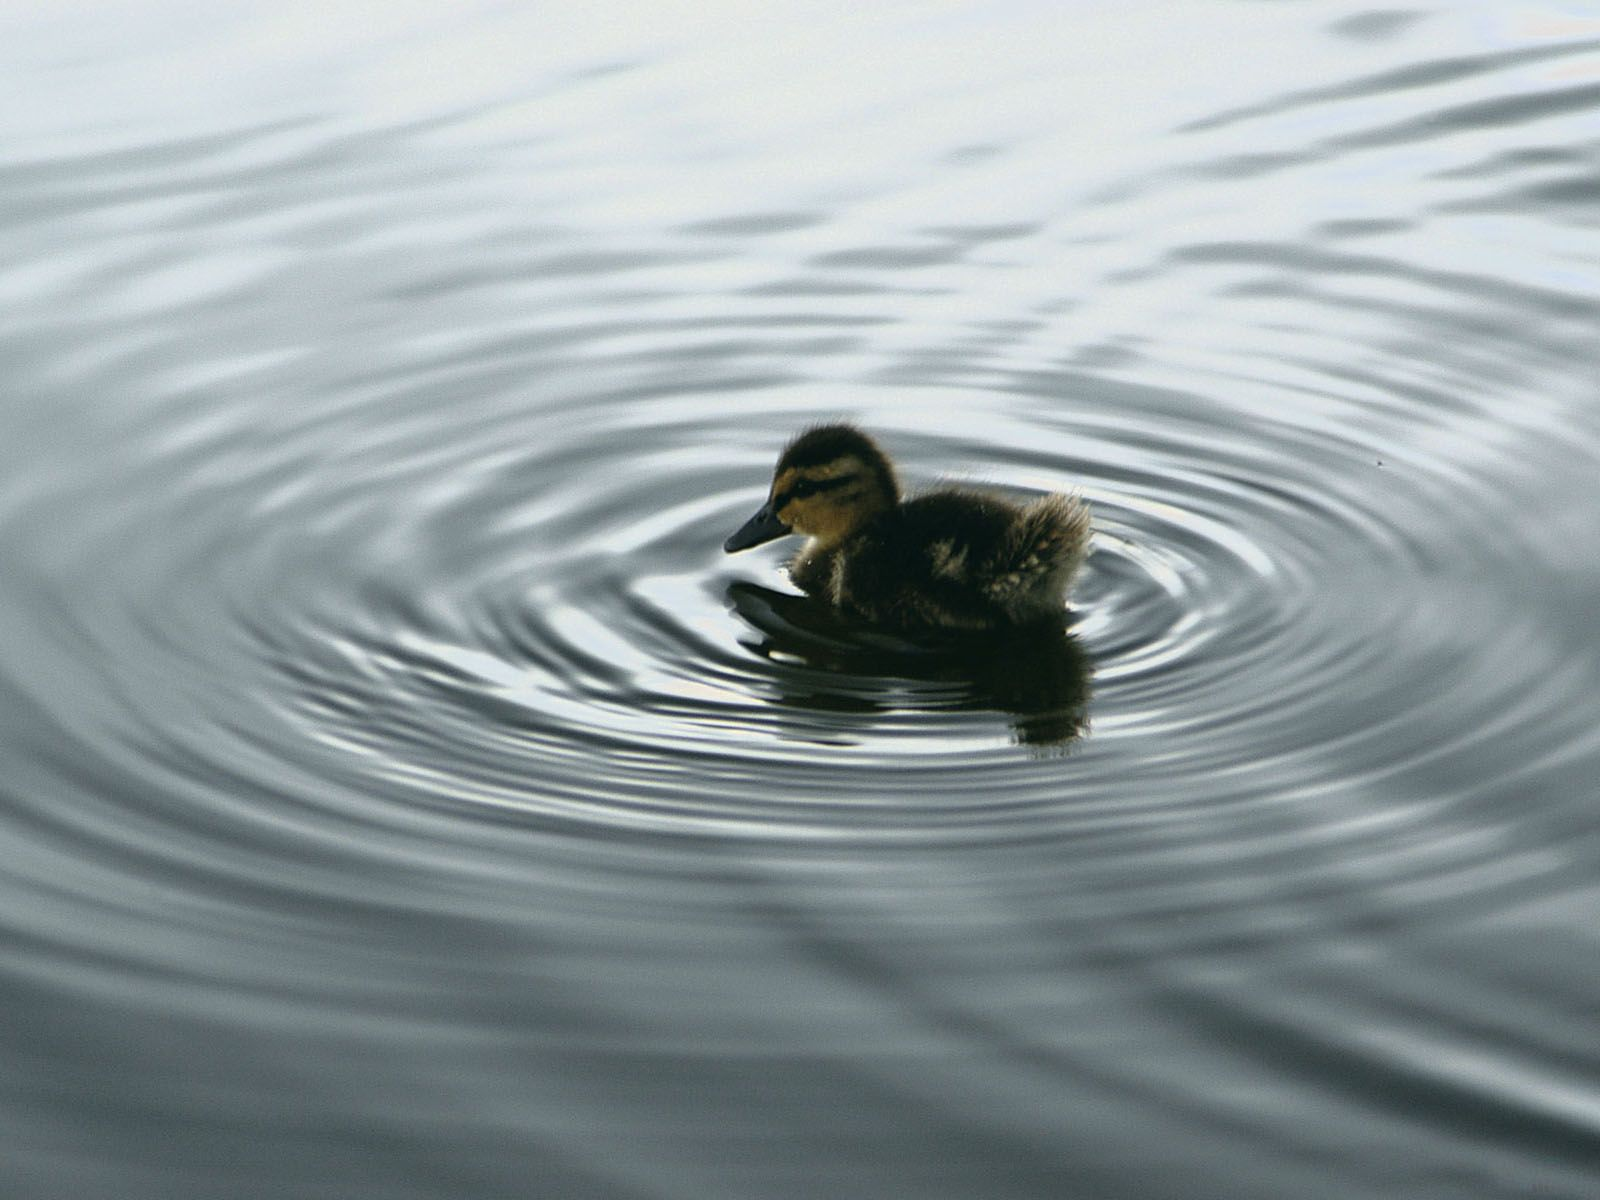 Small Duckling In The Water Wallpaper 1600x1200